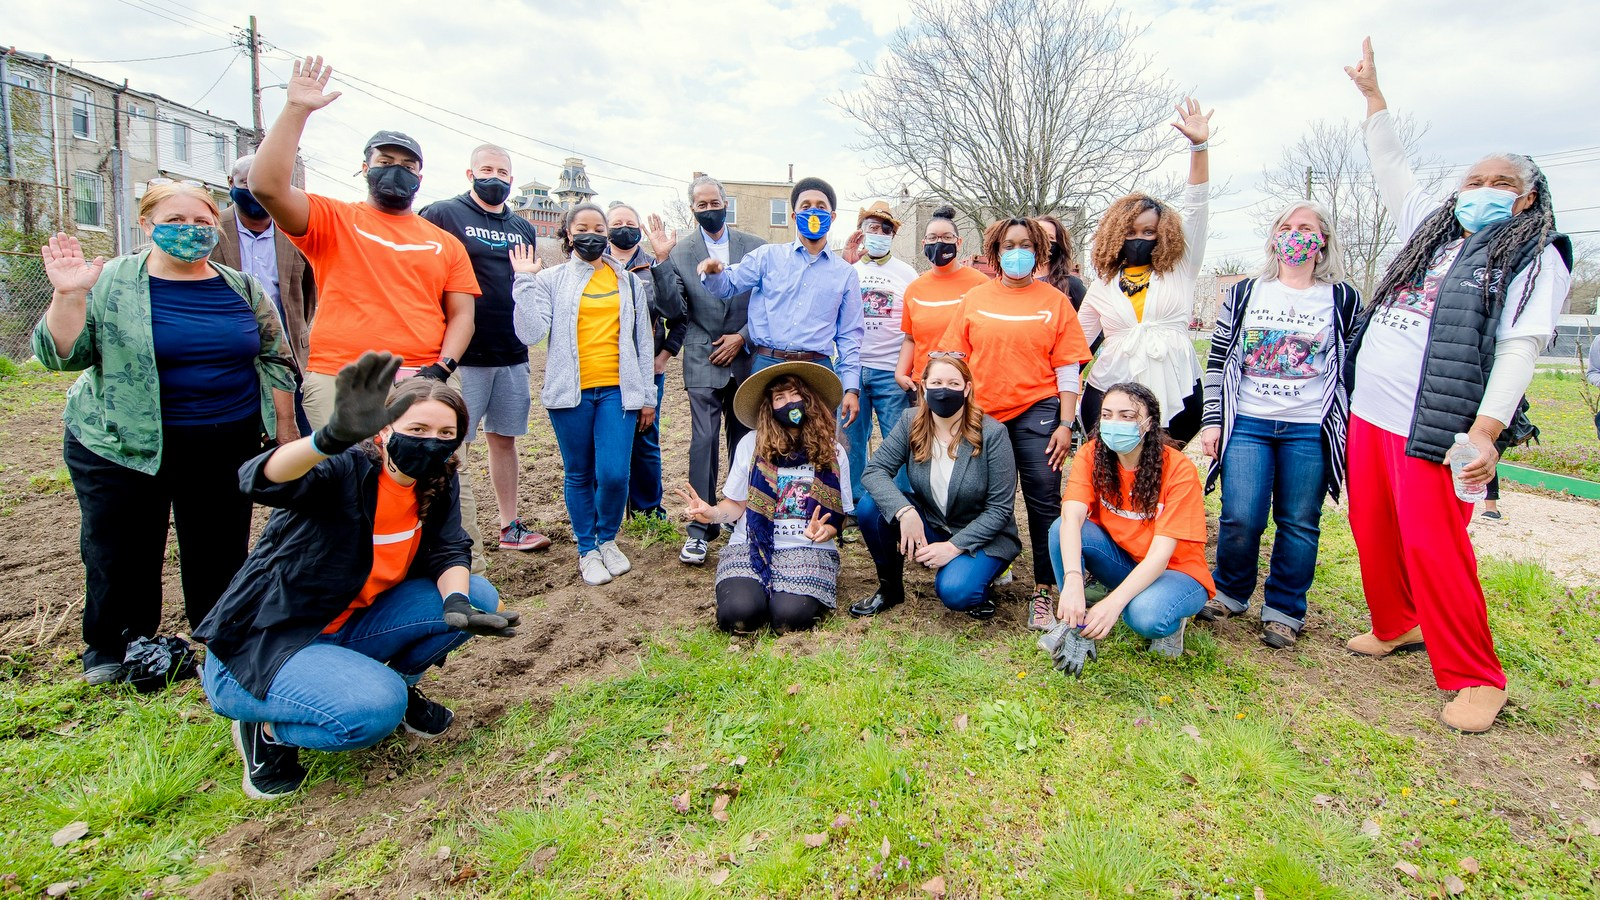 Posing together as Duncan Street Miracle Garden receives a $10,000 gift: Amazon volunteers, Mayor Sccott and Councilman Stokes (center) and Doris Minor-Terrell. (Handout photo)